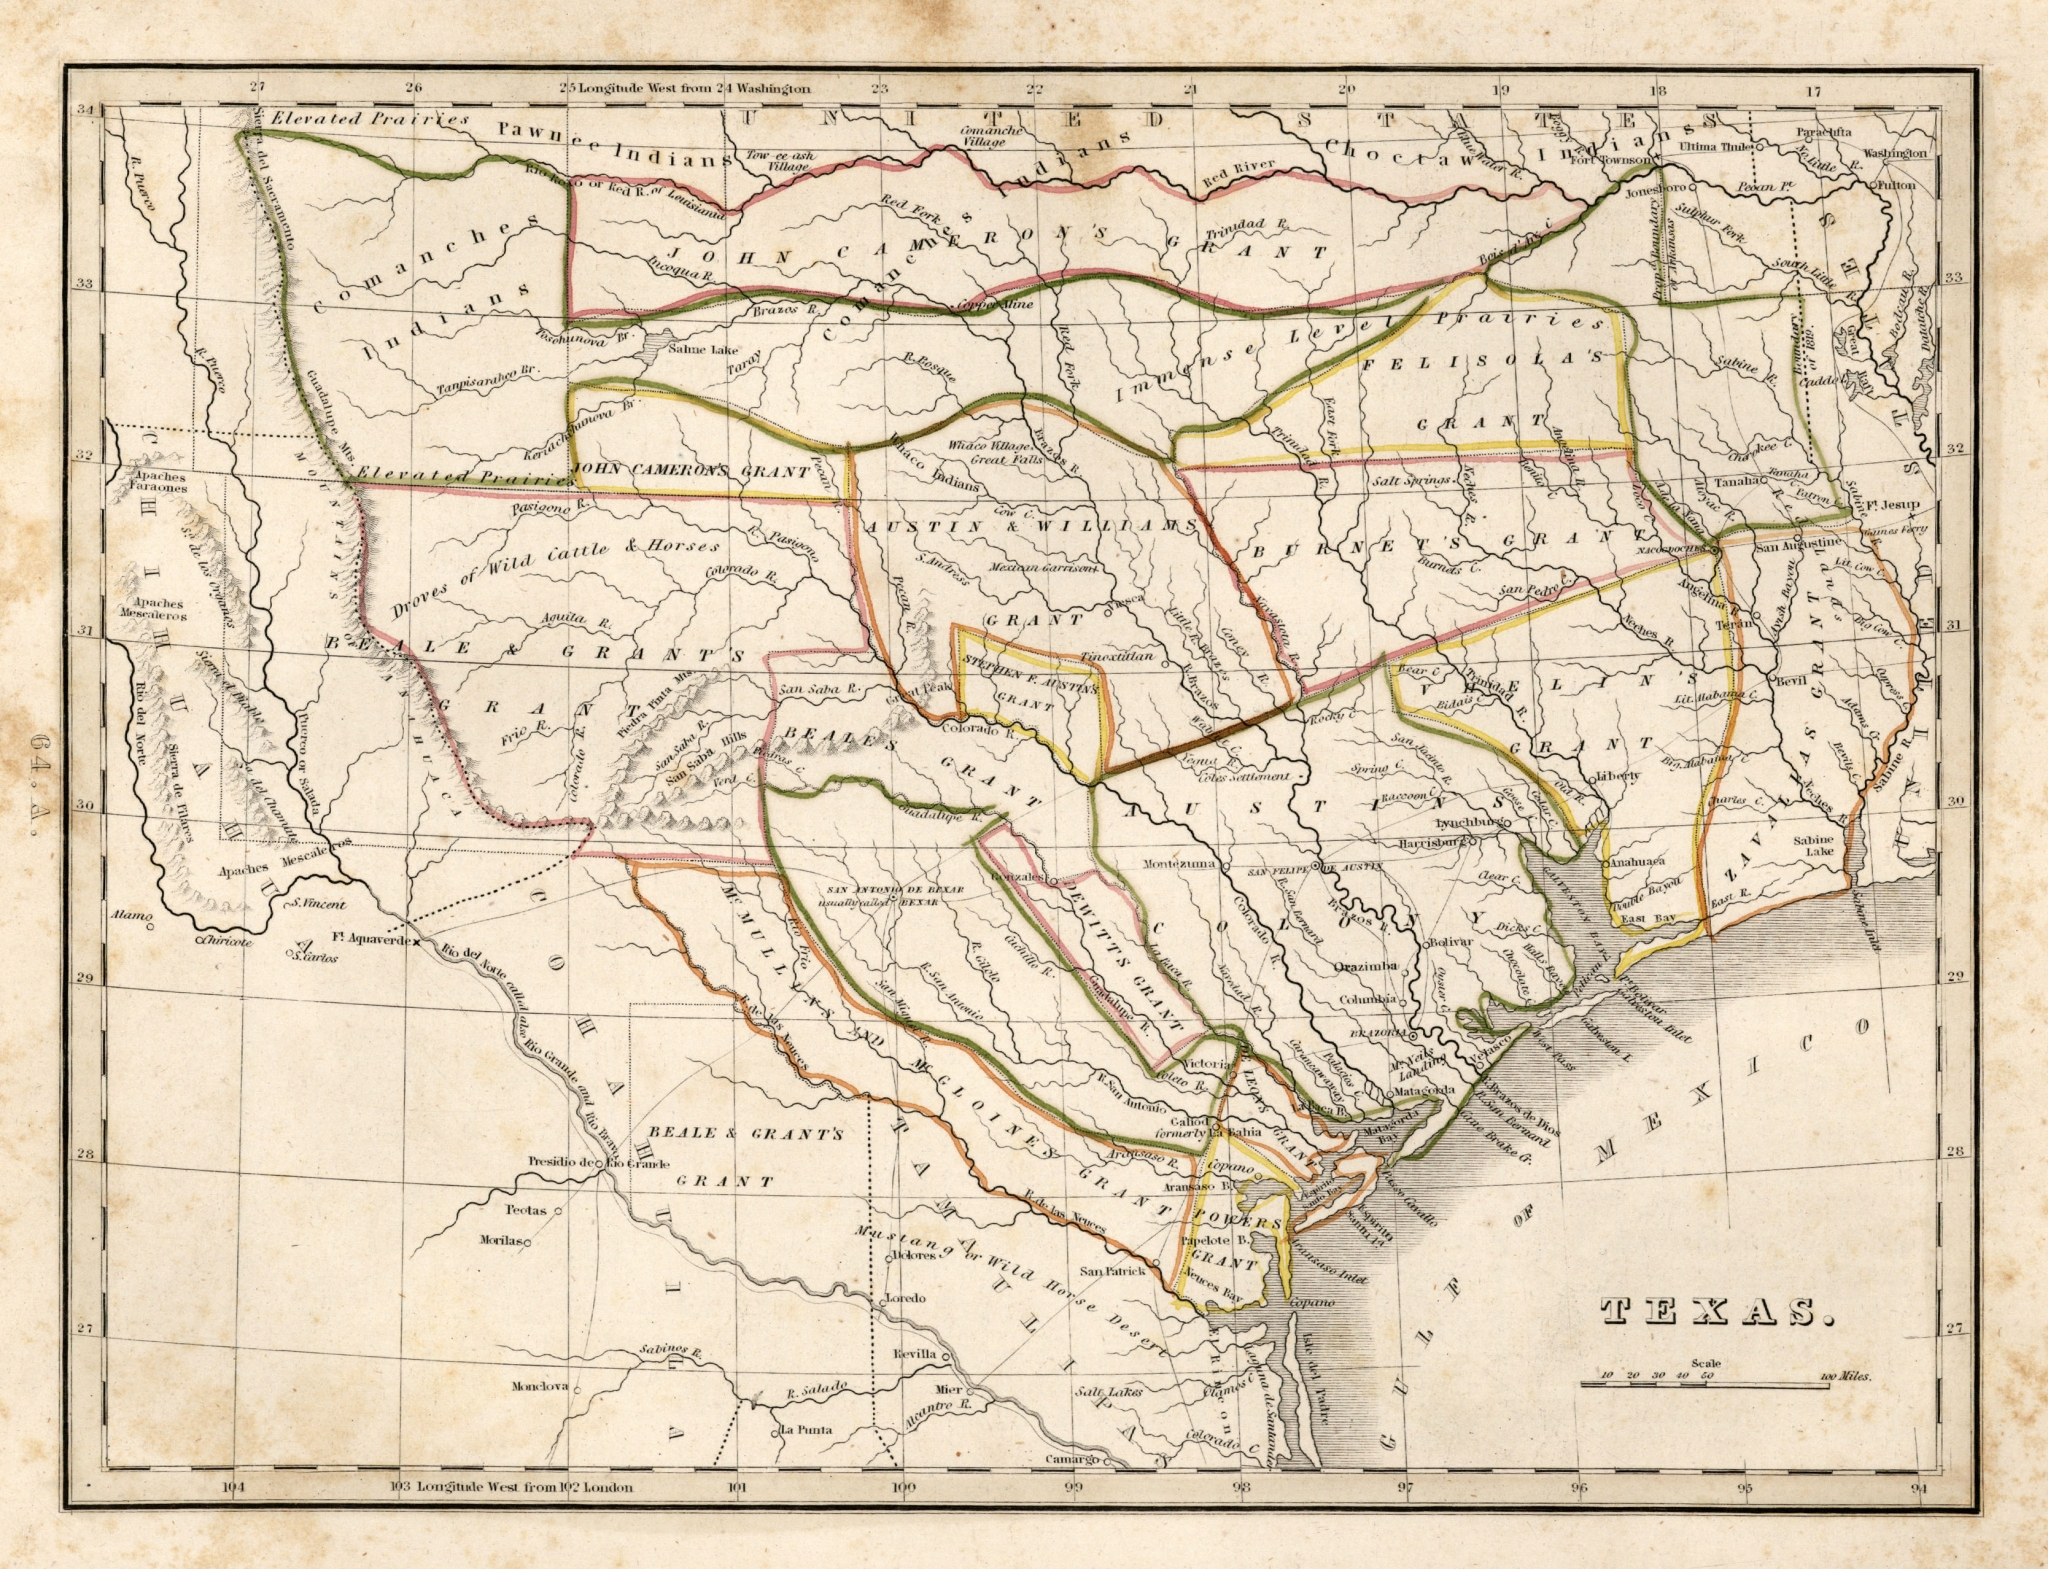 25 Awesome Maps That Help Explain Texas - Houston Chronicle - Republic Of Texas Map Overlay